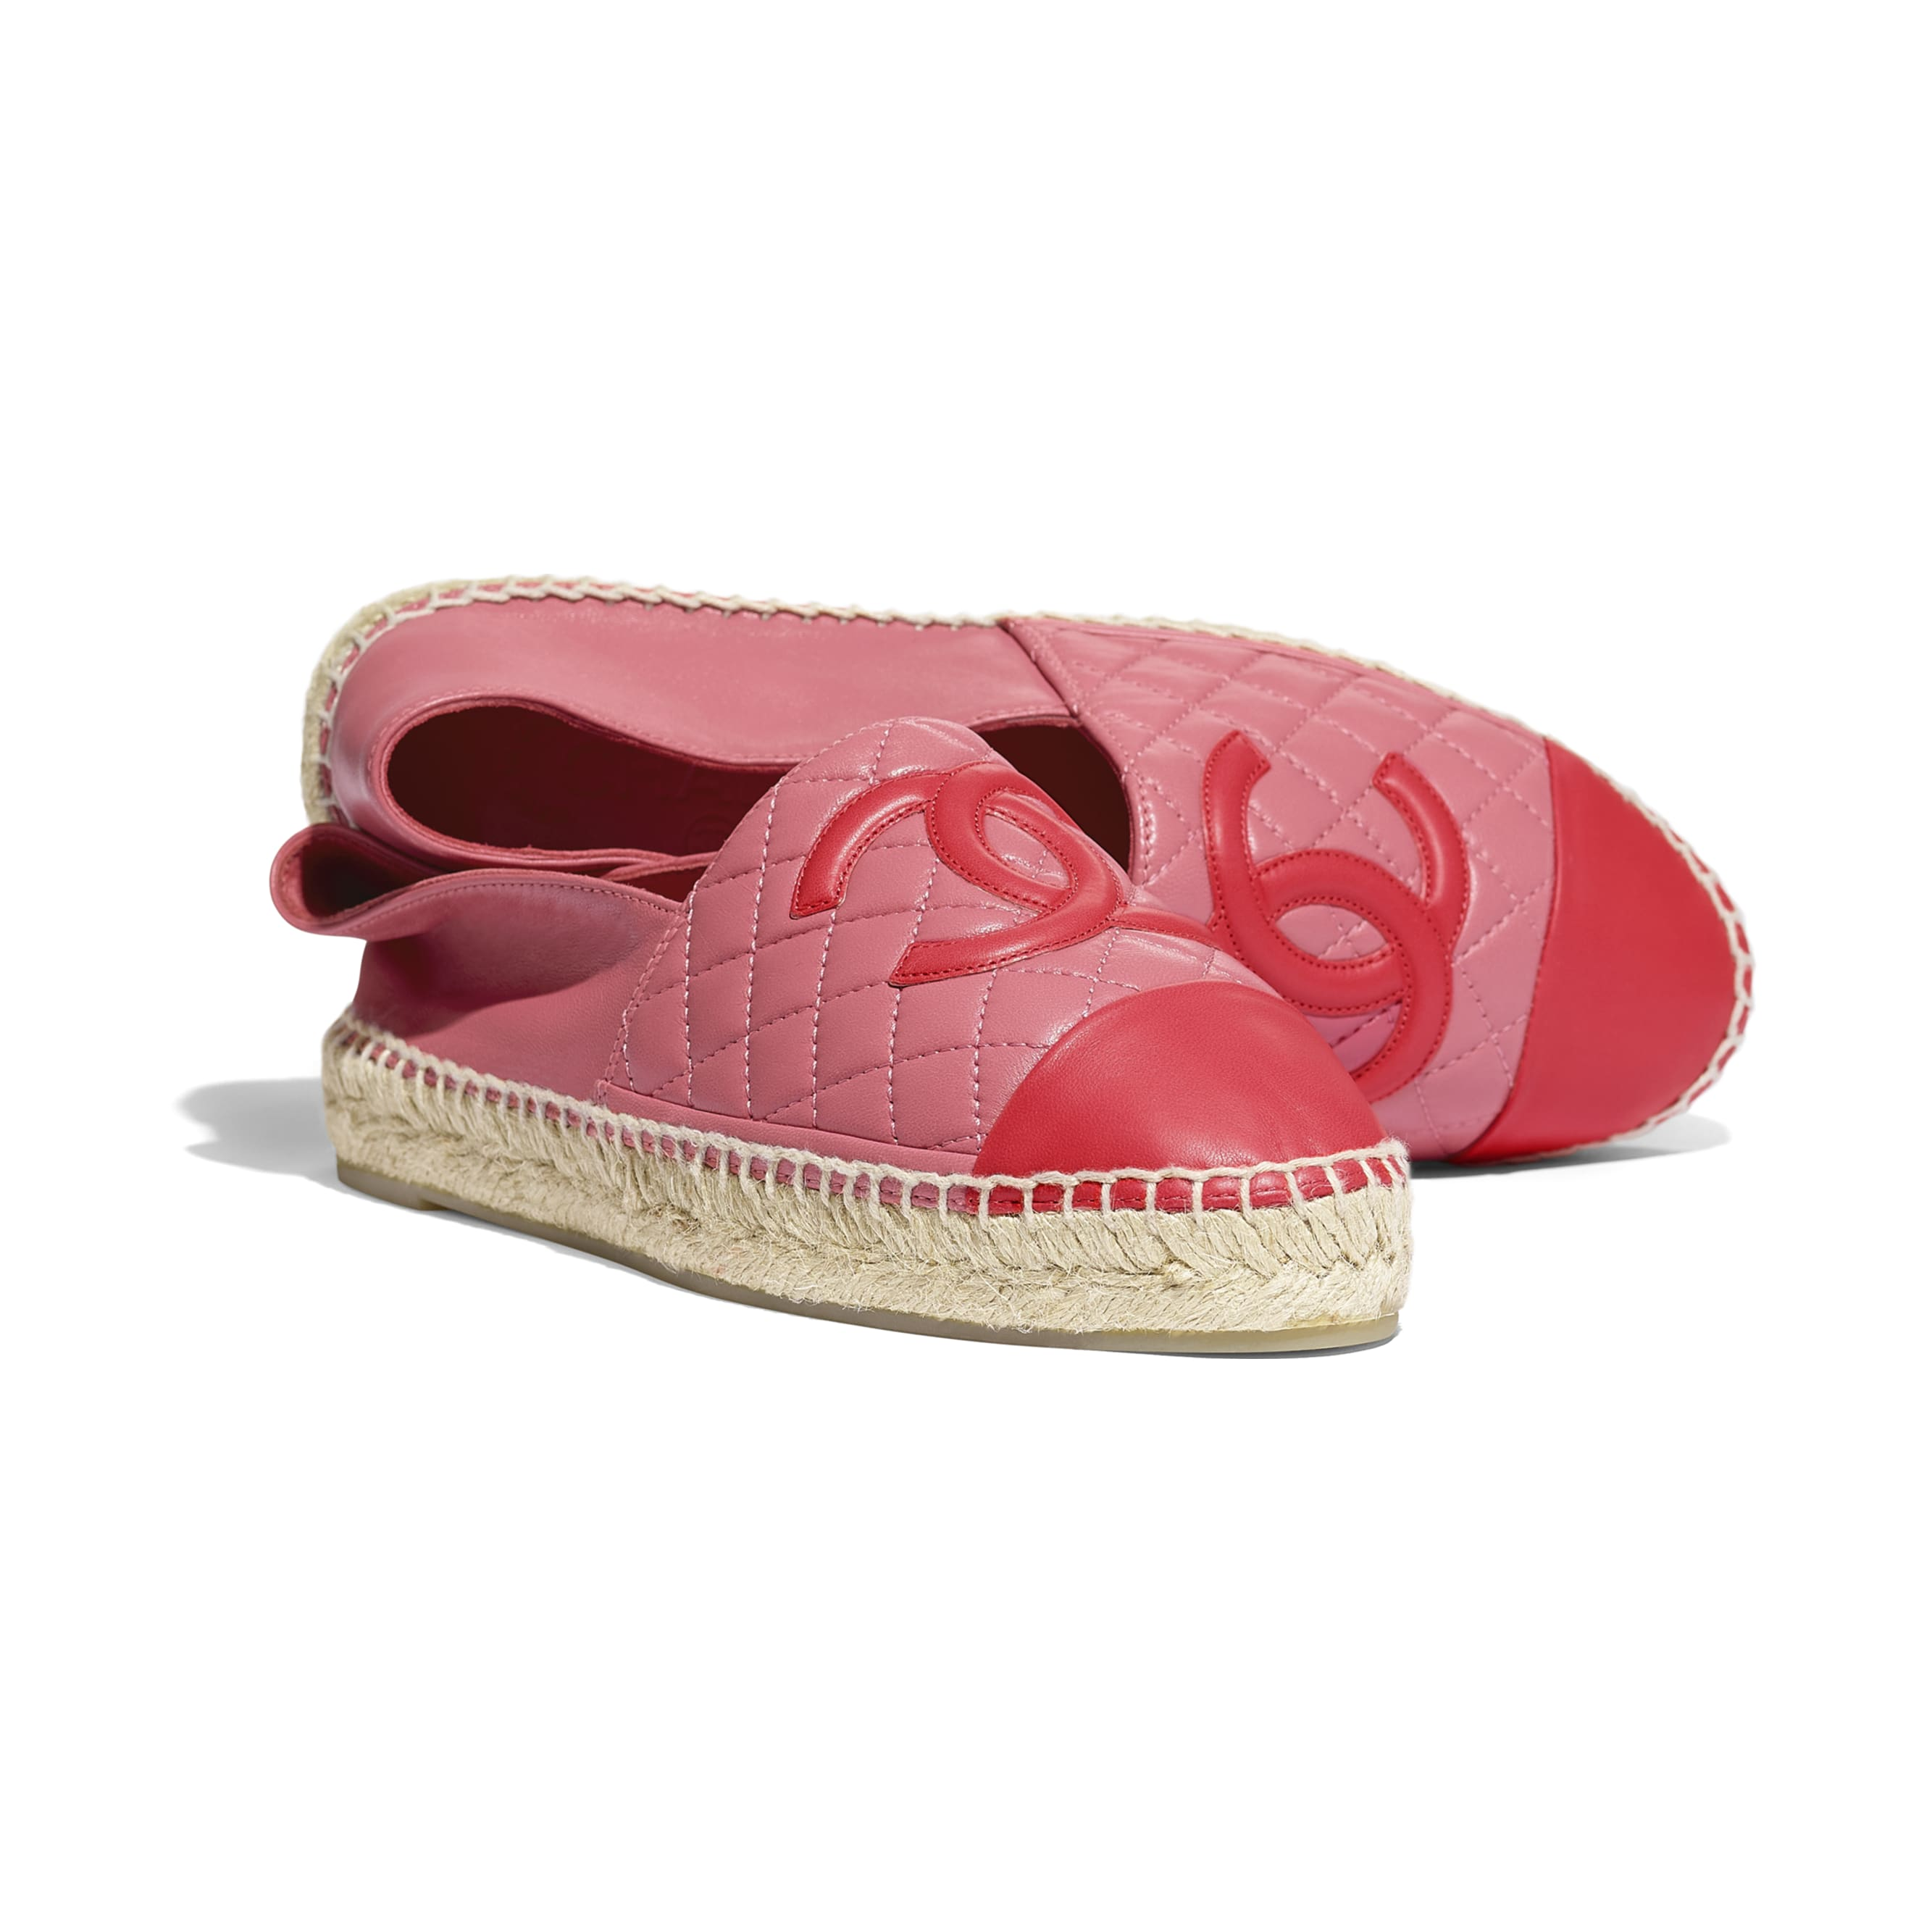 Espadrilles - Pink & red - Lambskin - CHANEL - Extra view - see standard sized version